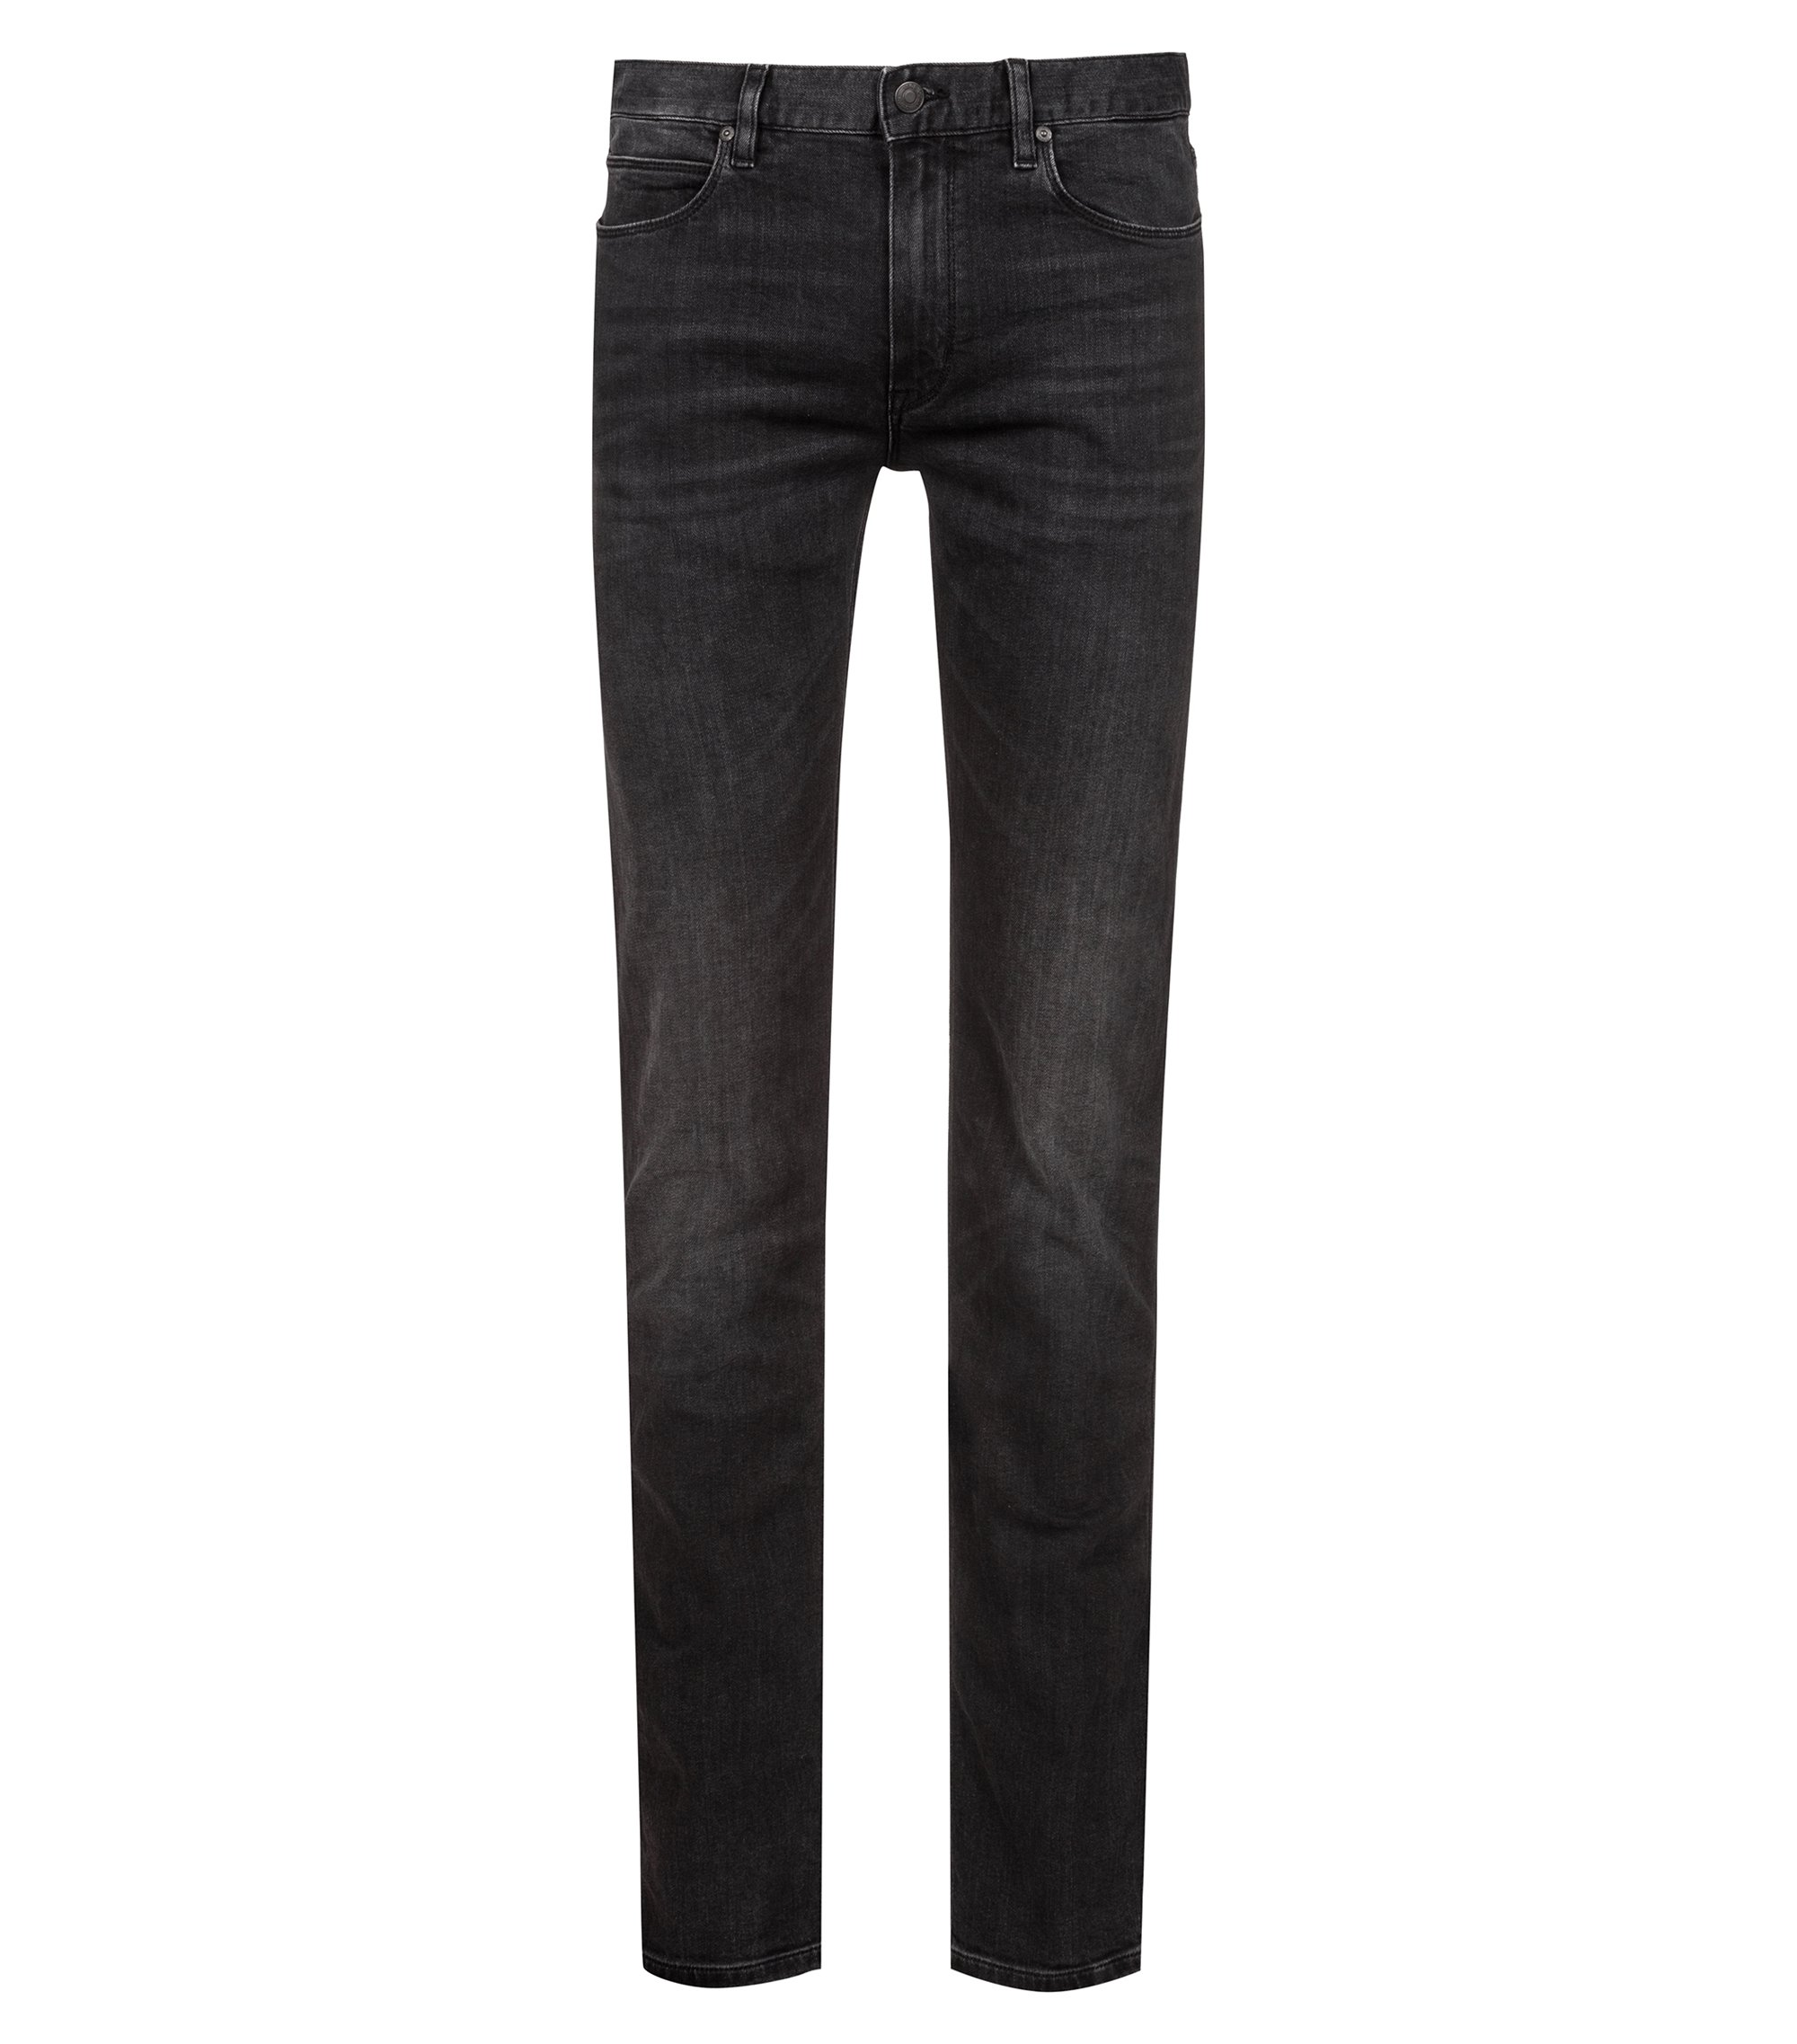 Jean Slim Fit en denim stretch gris foncé, Noir